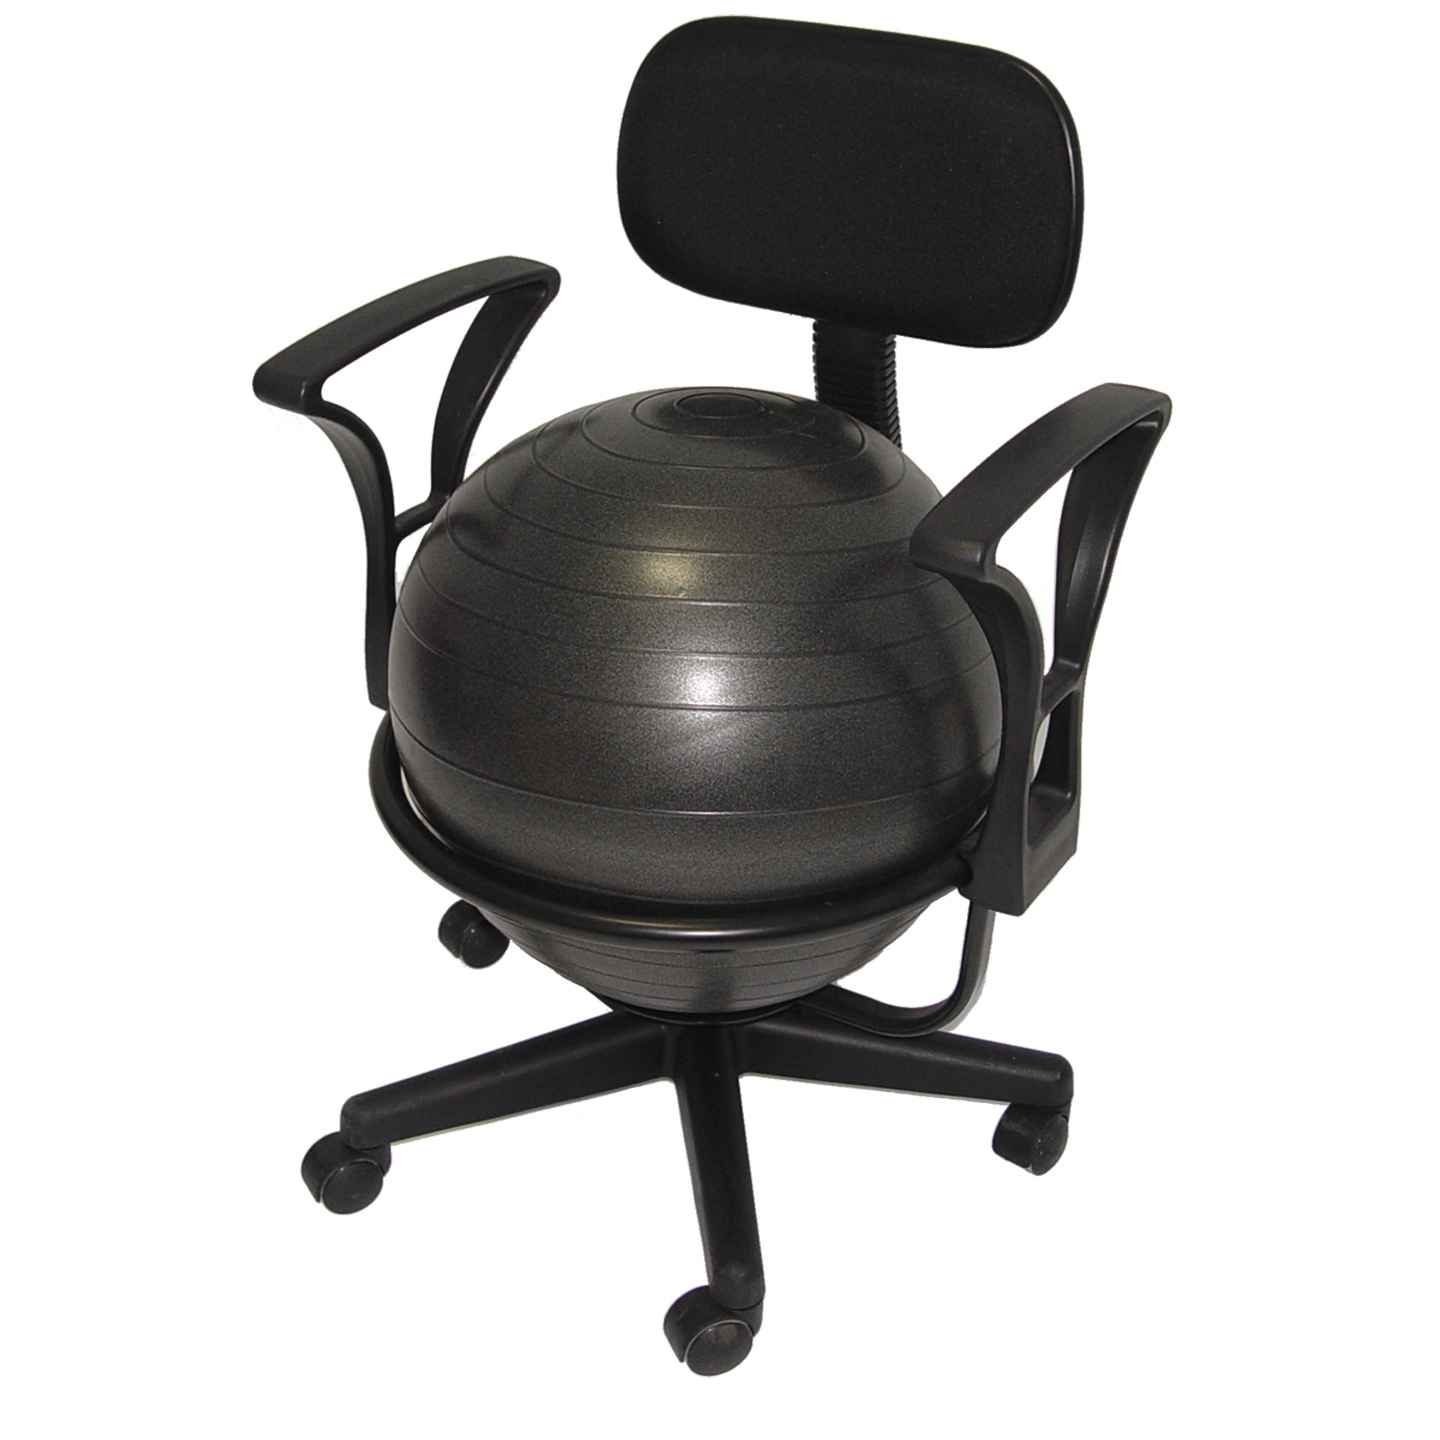 age chairs for fitness zsig chair collections junior plus ball children balance